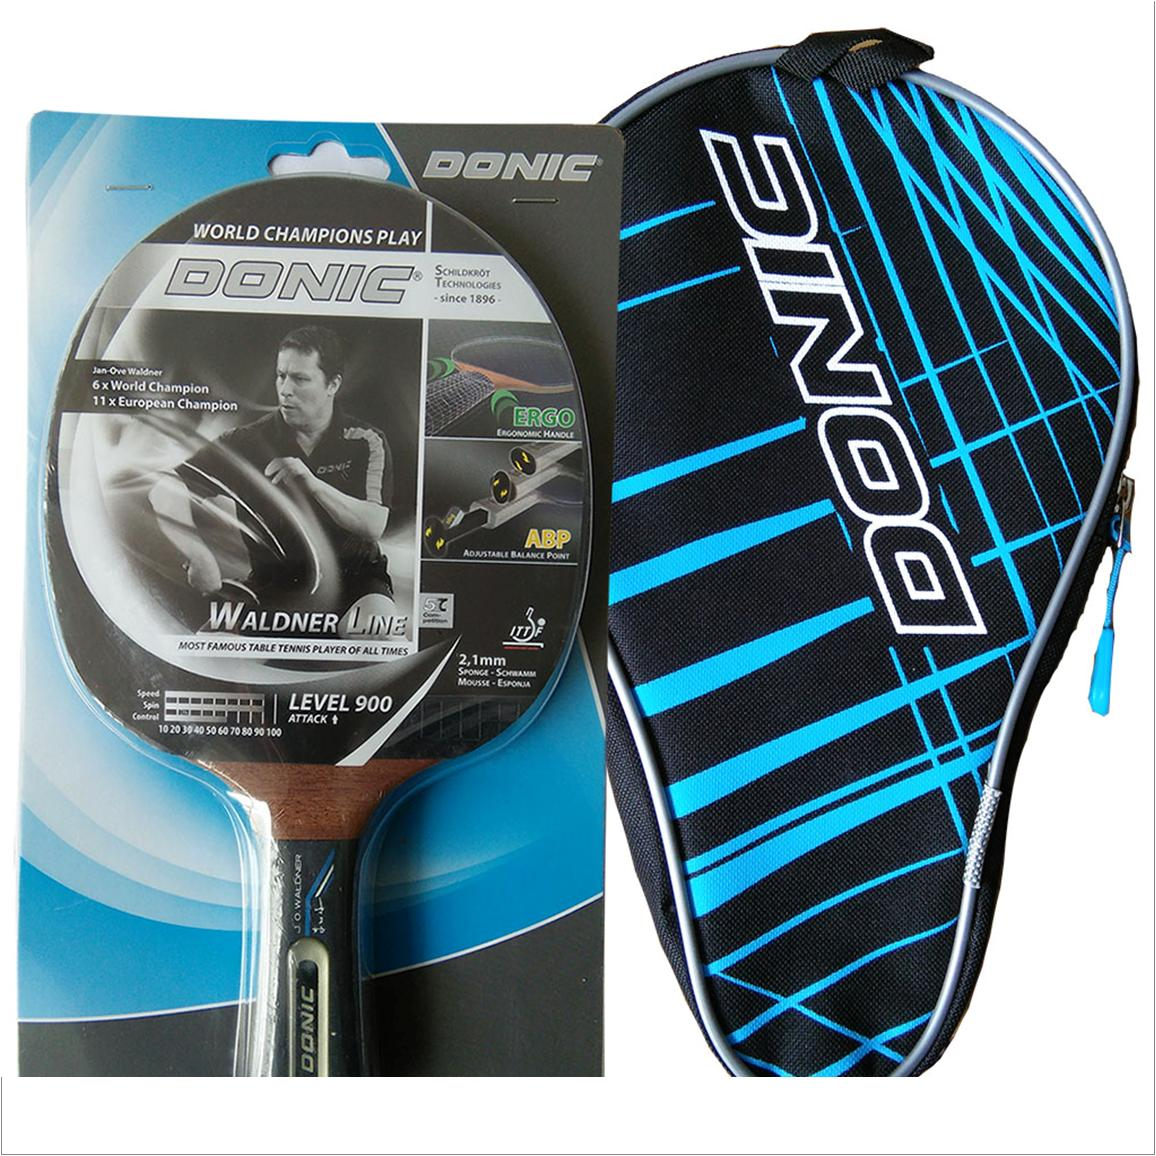 Donic Waldner 900 Table Tennis Racket Buy Donic Waldner